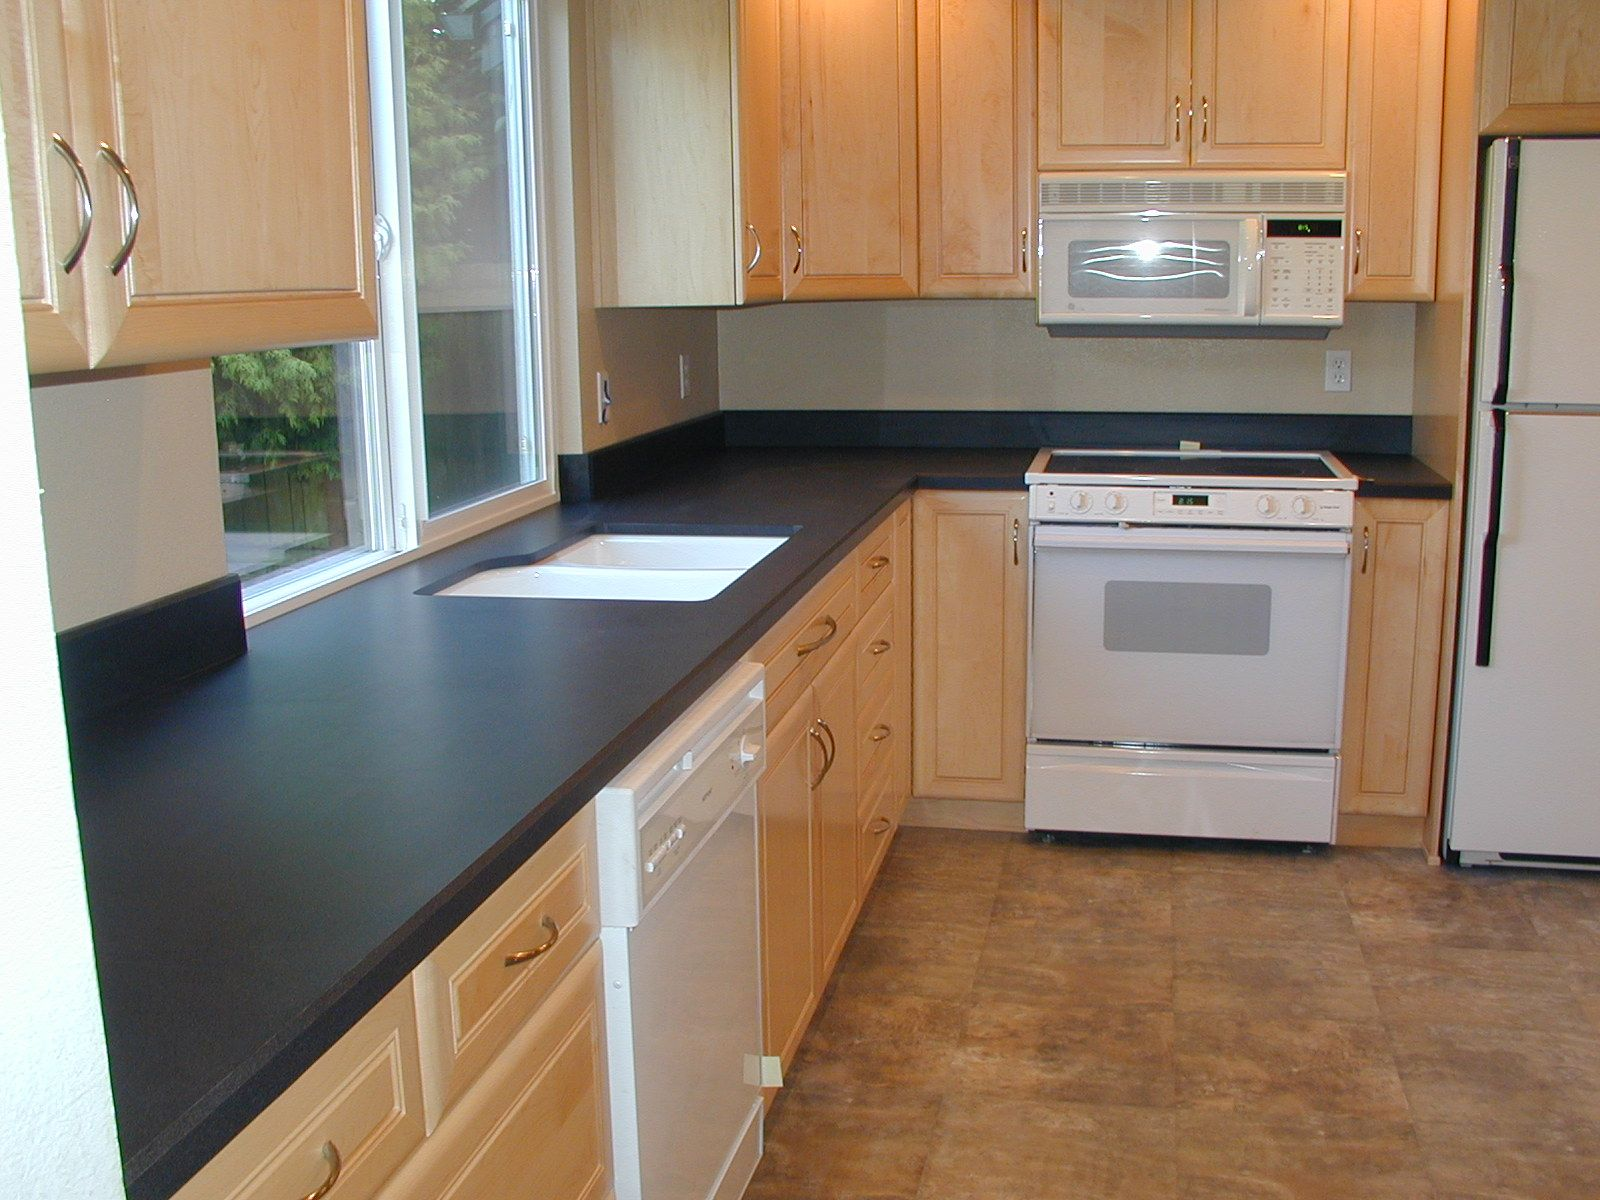 Laminate Kitchen Countertops Ideas Kitchen Ideas With Dark Countertops  Countertop Design And